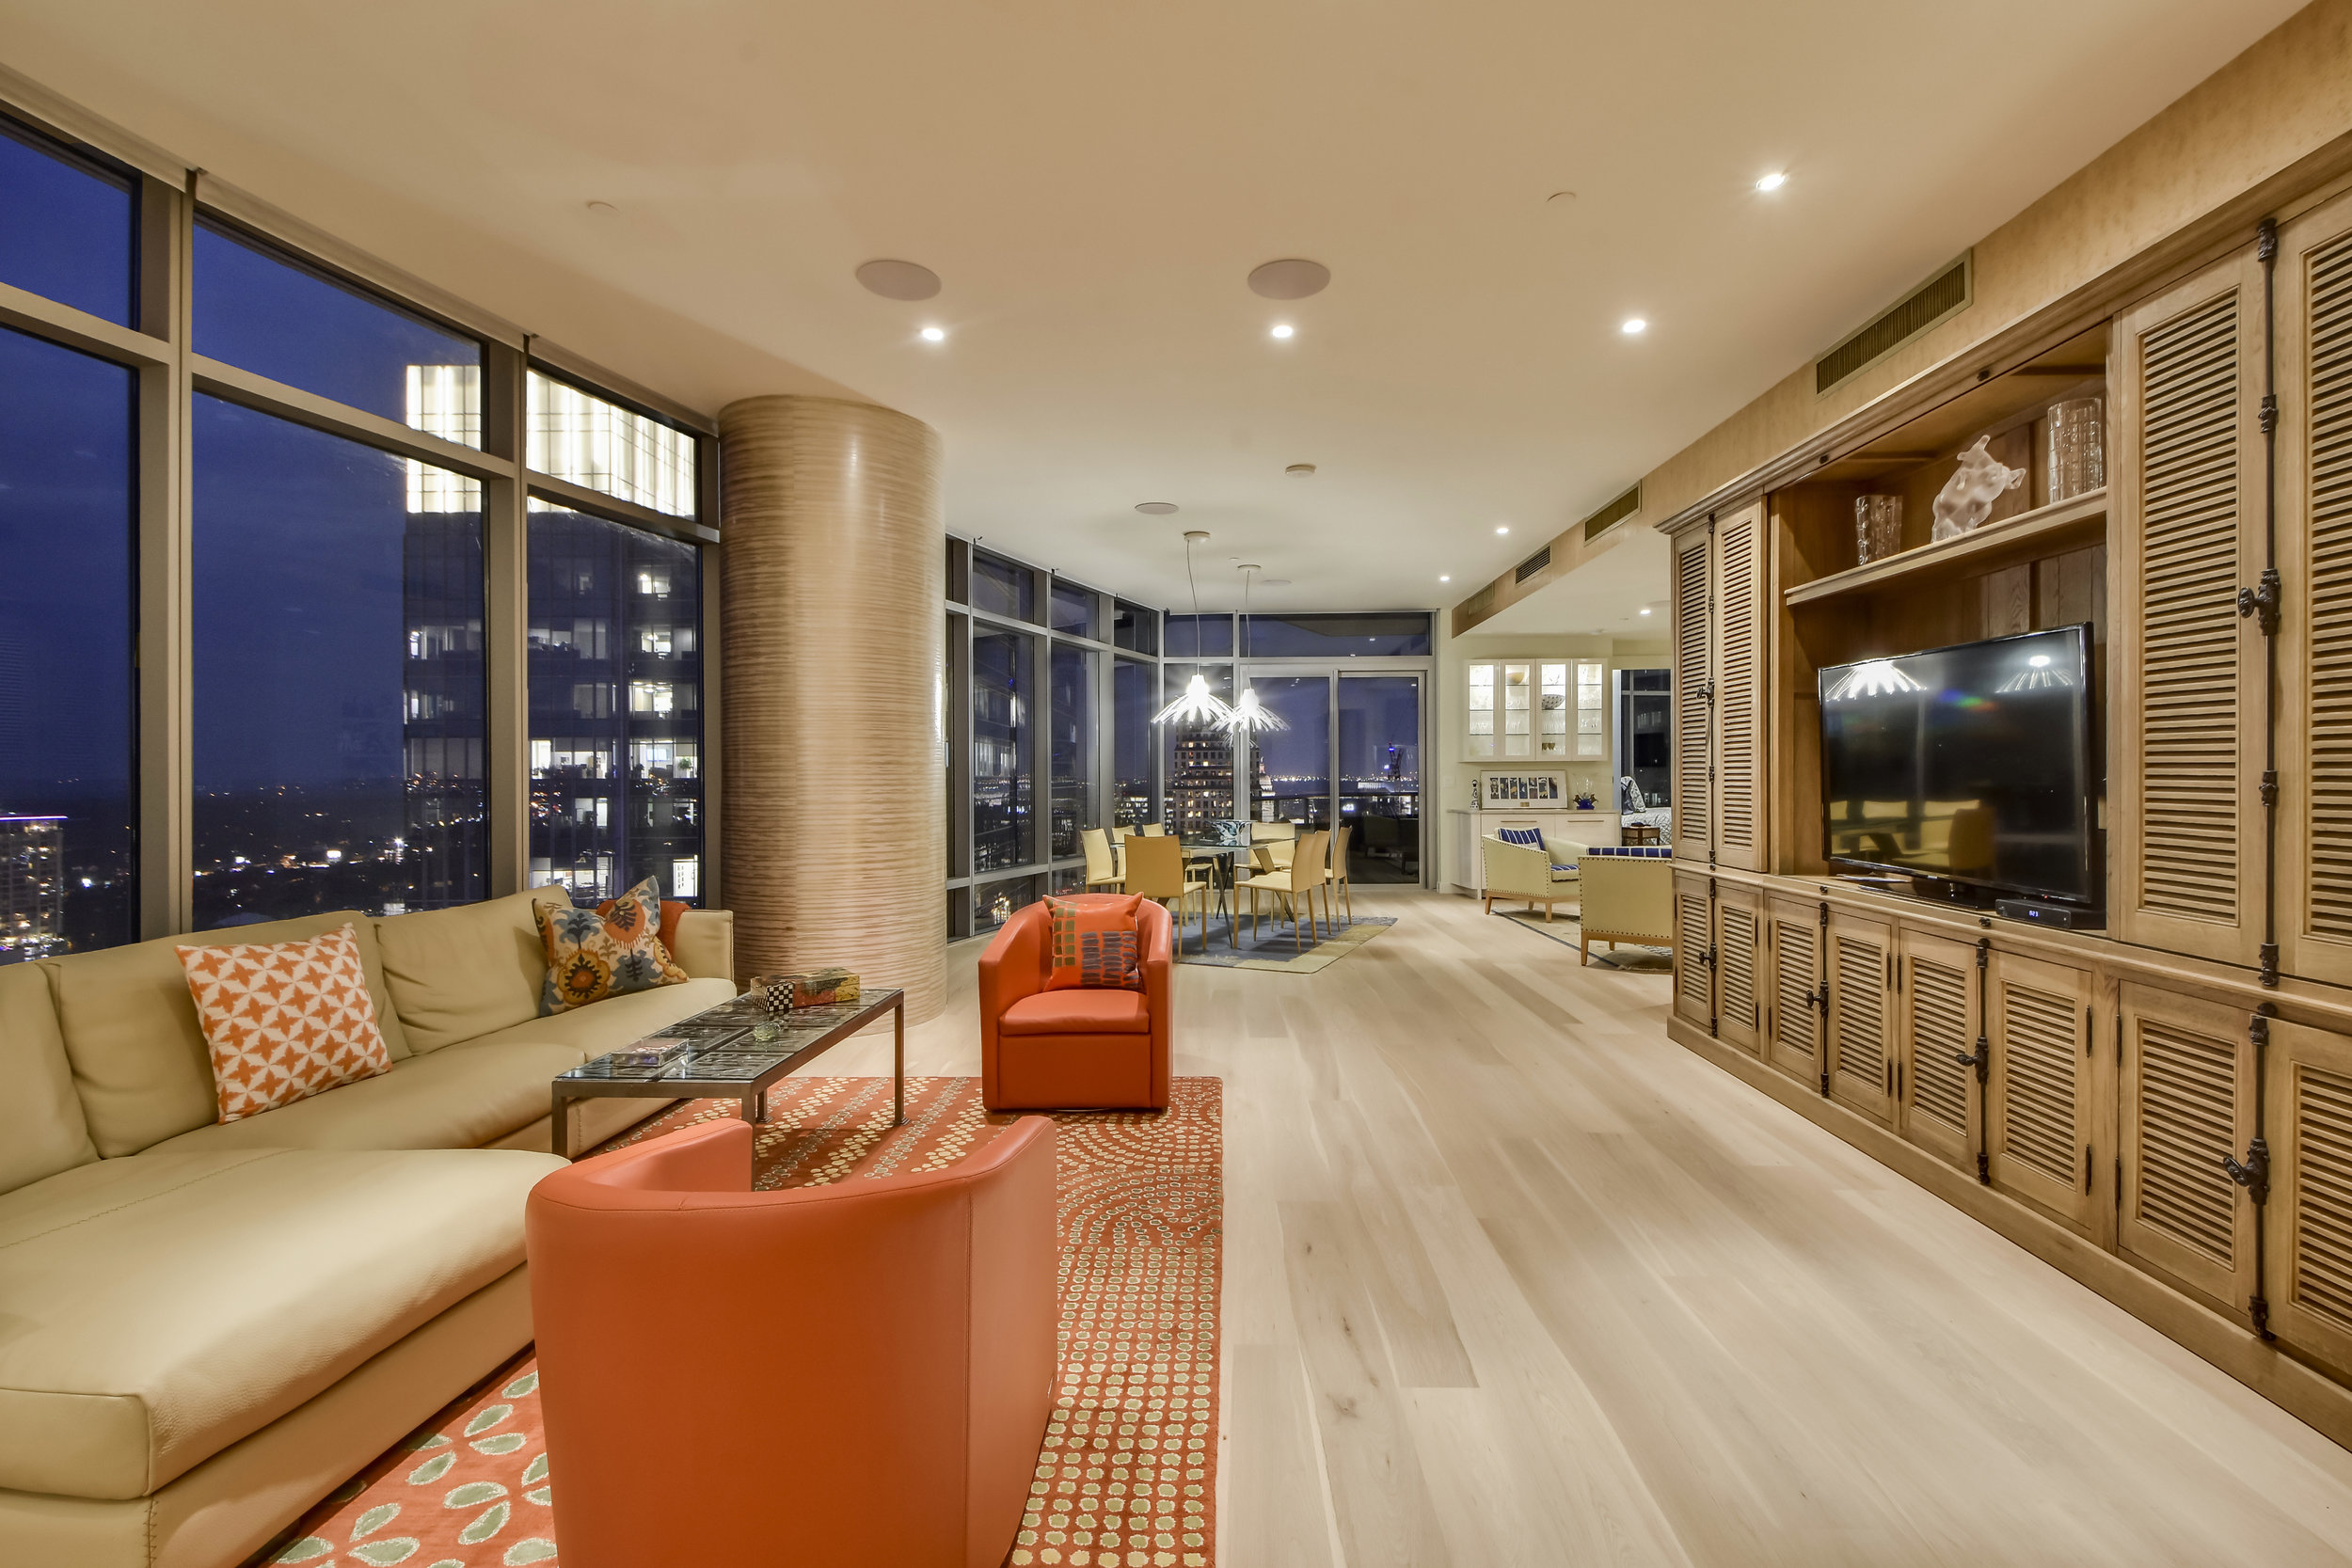 200 congress avenue, #28nw - Offered for $2,899,000